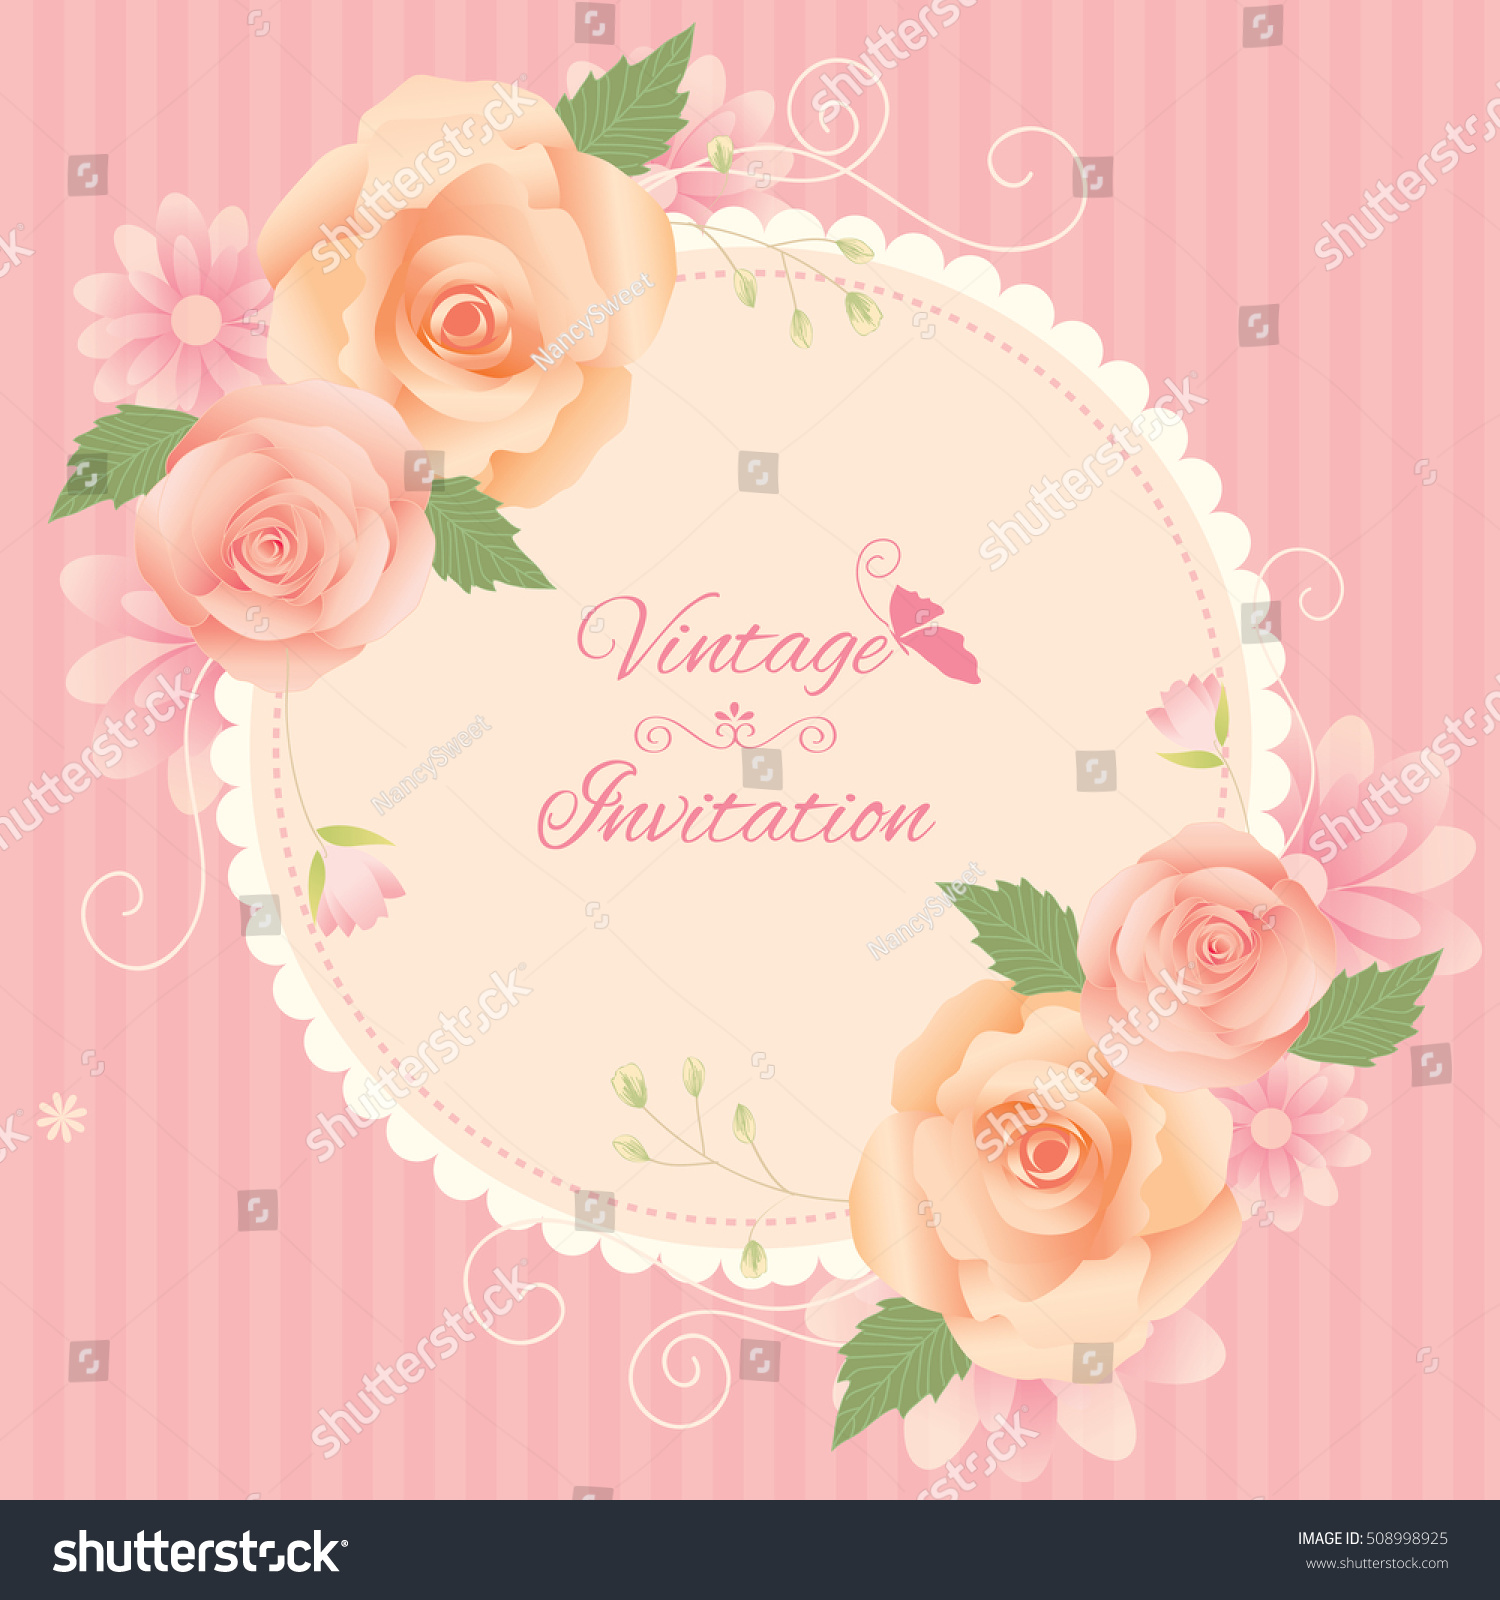 Flowers floral wreath vintage style illustration vector stock photo flowers and floral wreath of vintage stylelustration vector pink pastel colors background mightylinksfo